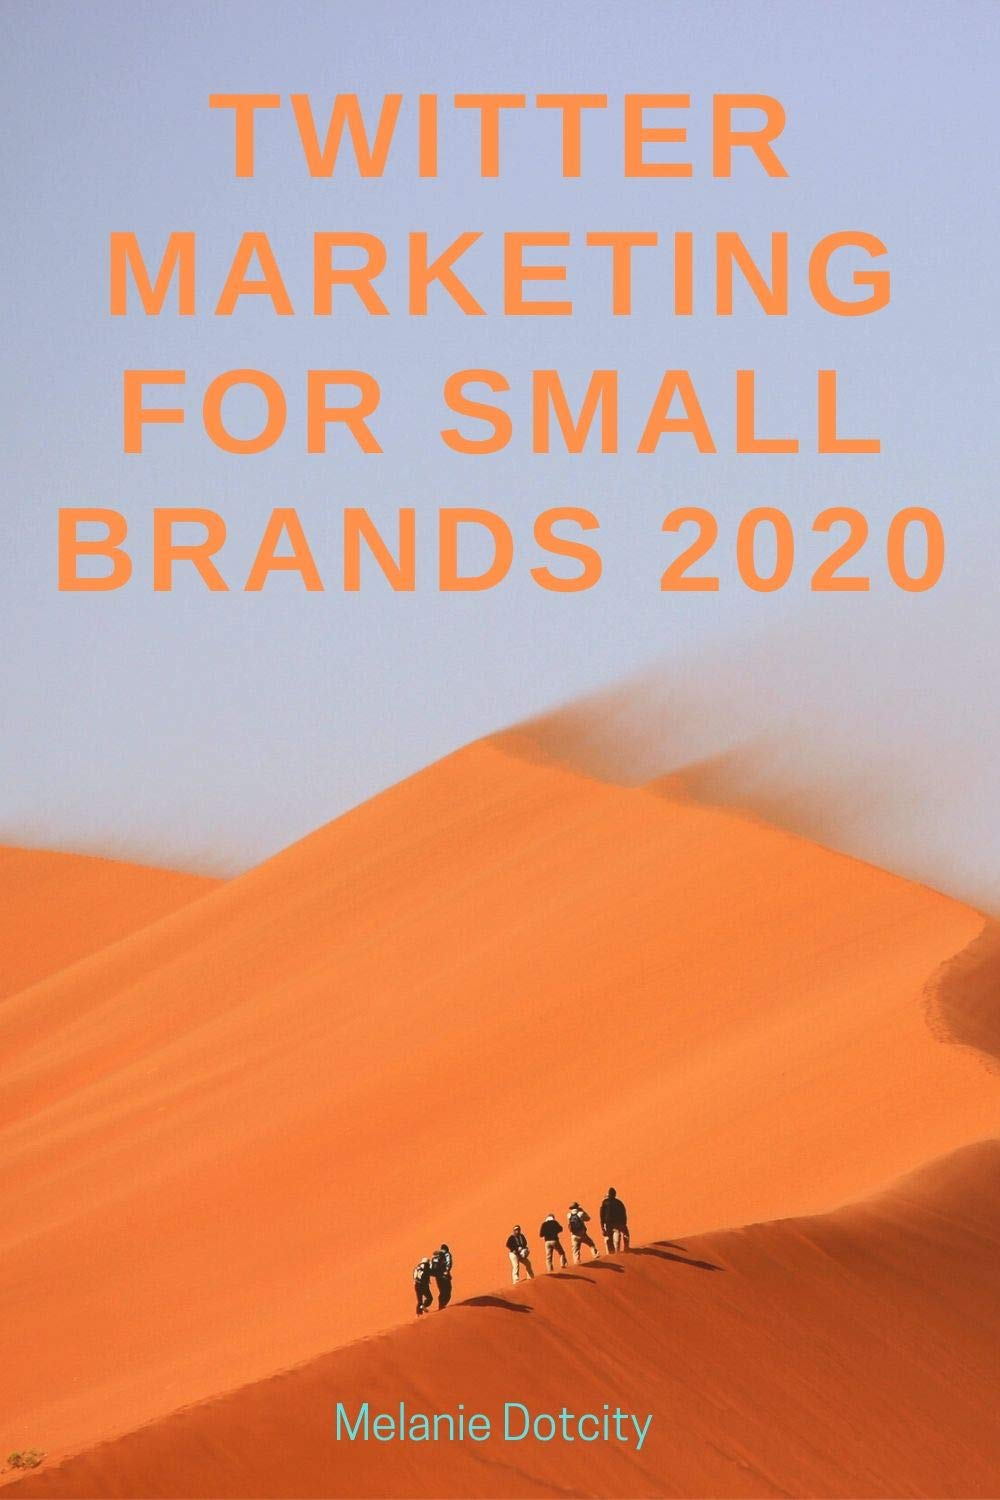 Twitter Marketing for Small Brands 2020: Tailored Tips for Bloggers, Podcasters, Sellers, Streamers, and More (Marketing for Microbrands Book 1)